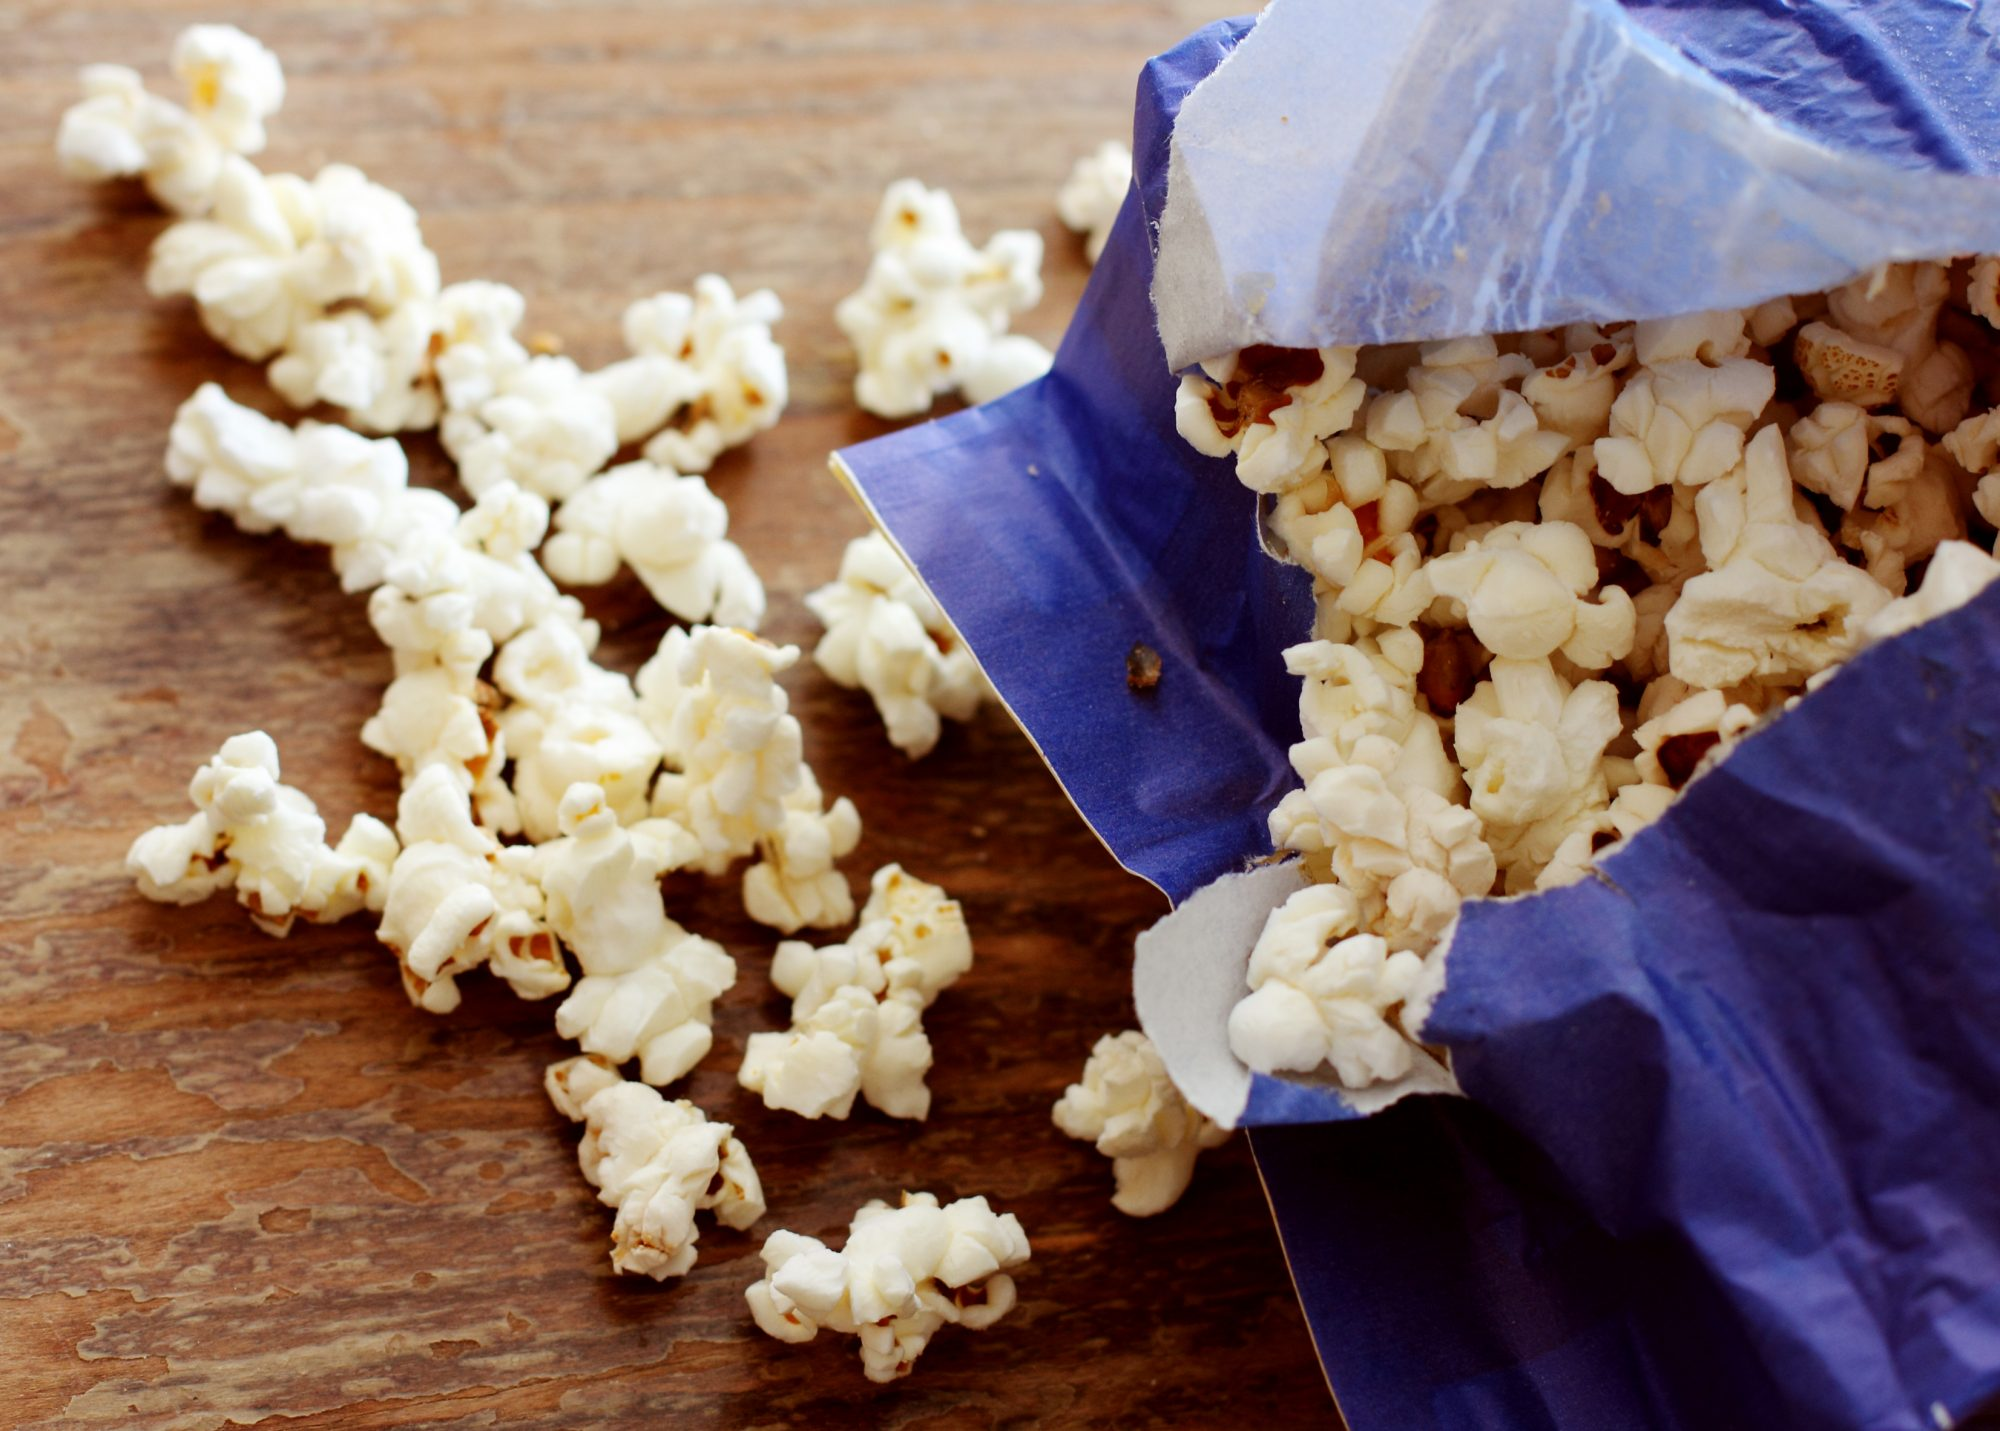 What Happens If You Pop Bags of Popcorn 'This Side' Down